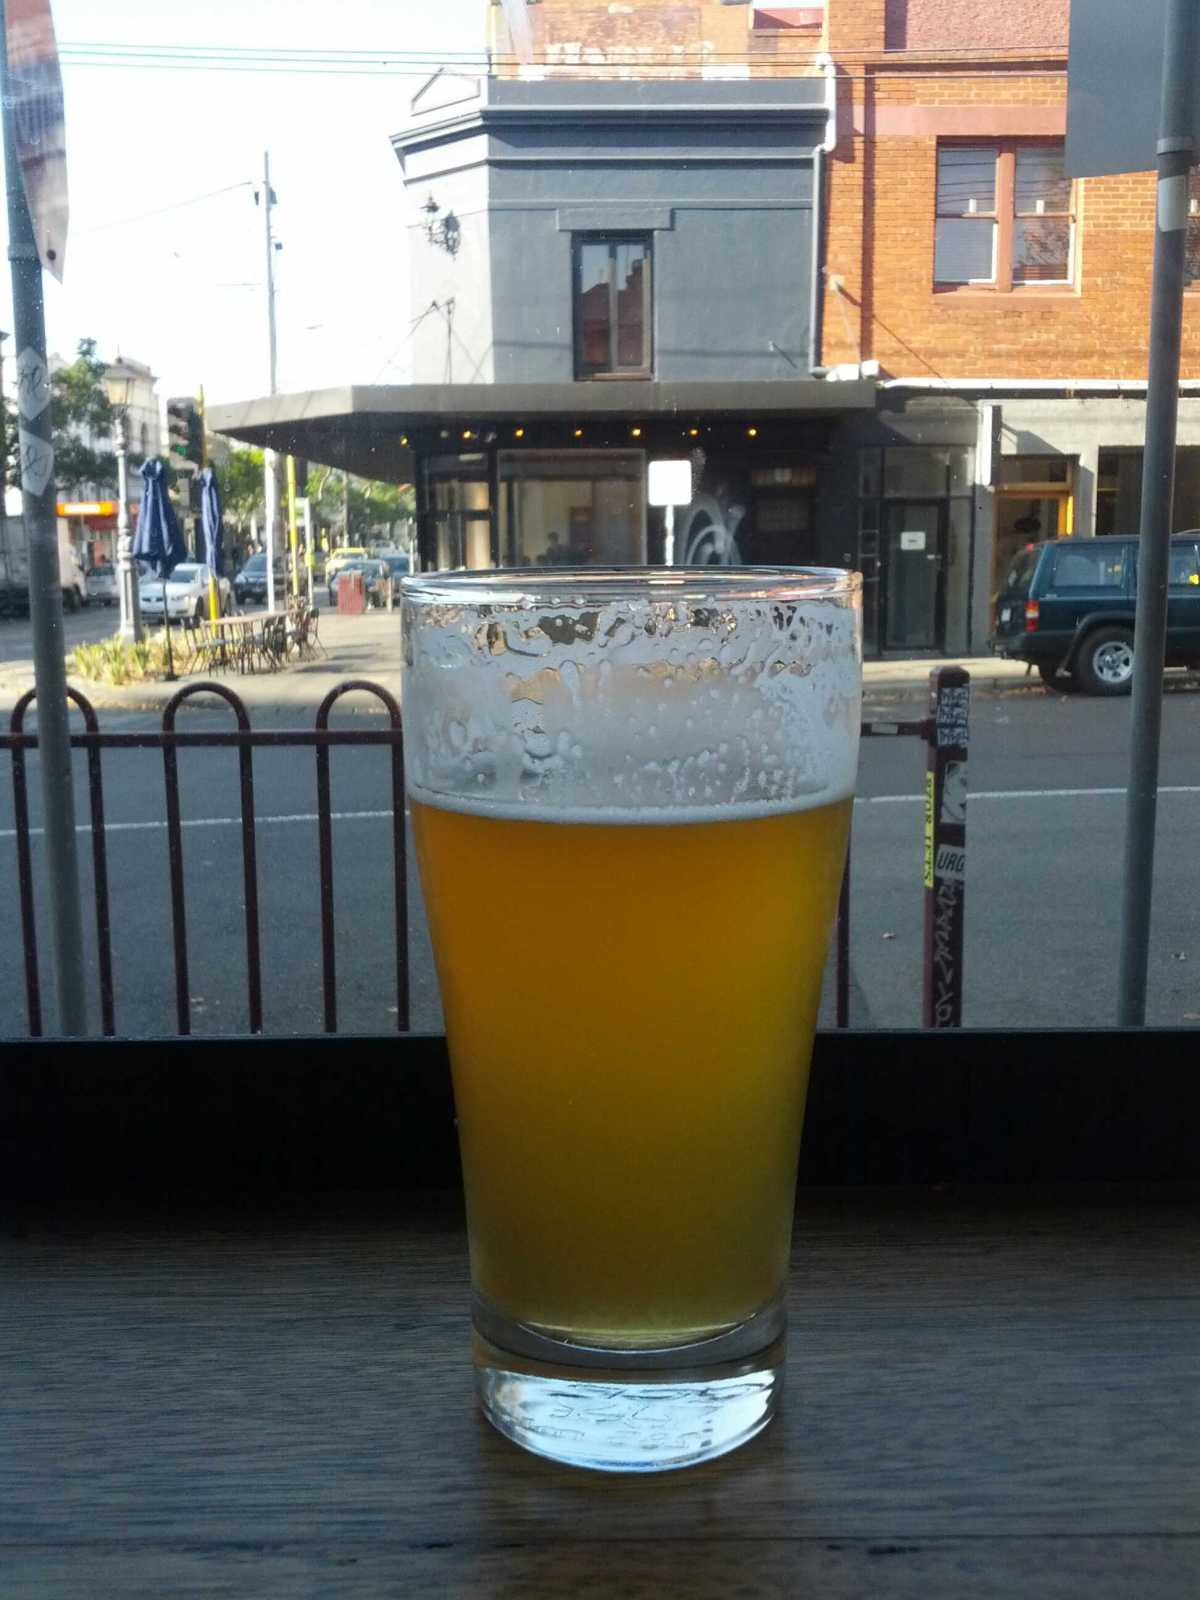 Pint of Origin TAS – The Gertrude Hotel